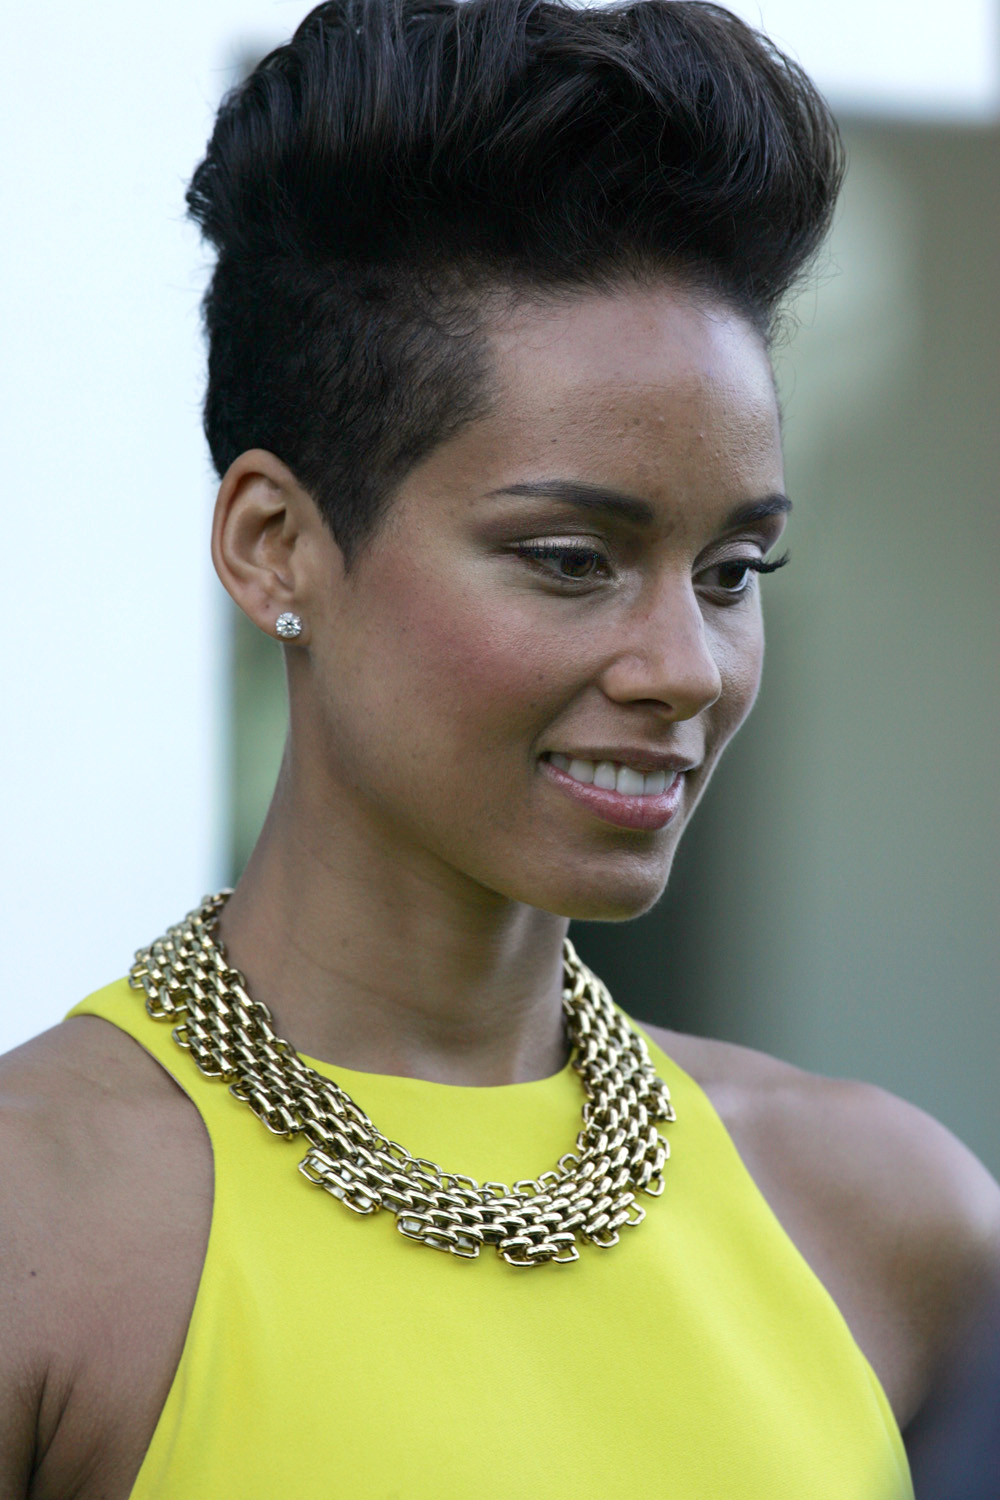 Alicia Keys - Wikipedi... Alicia Keys